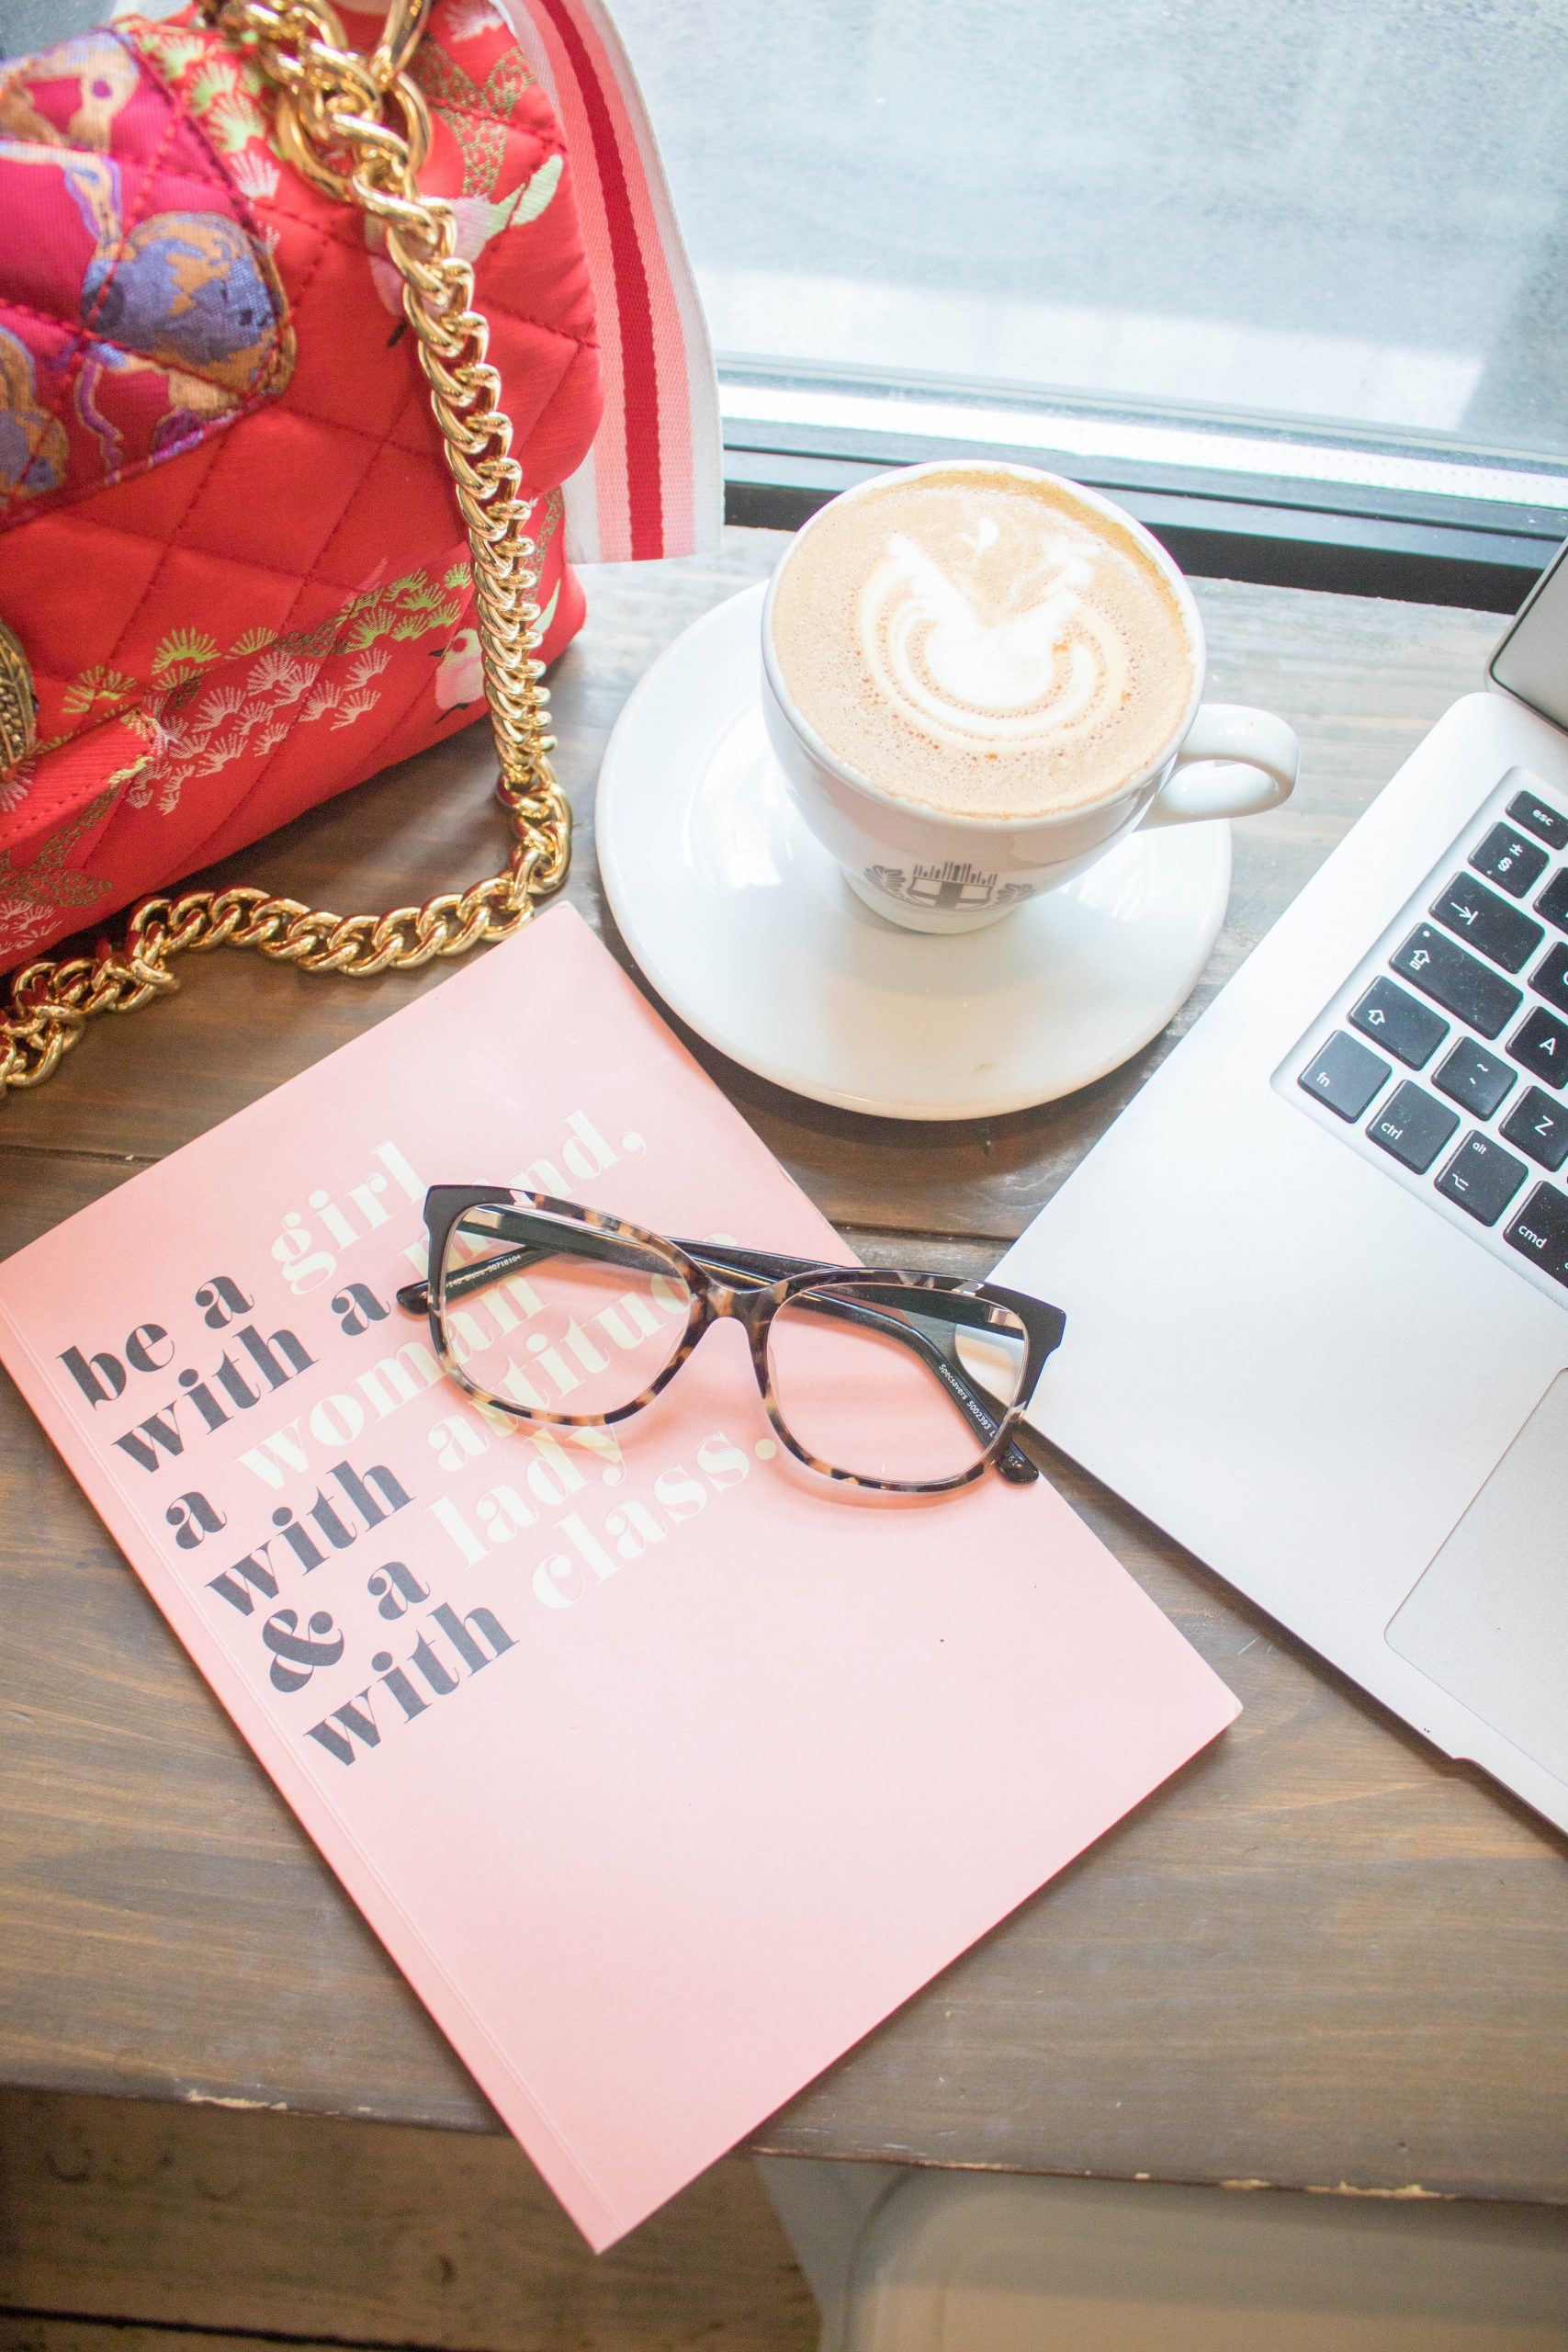 How I Run My Blog While Working Full Time